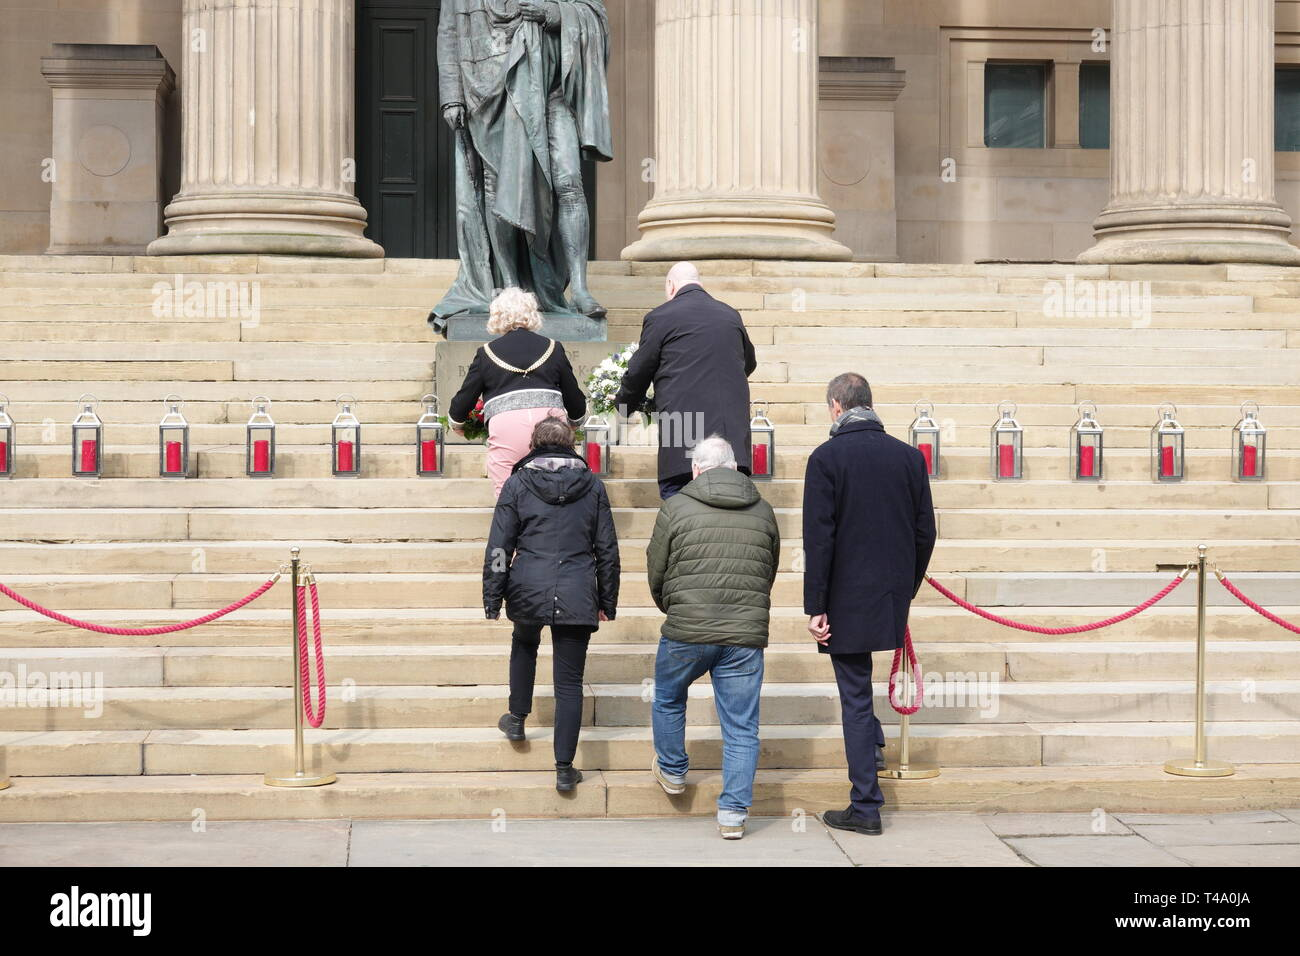 Liverpool, UK. 15th Apr, 2019. Mayor Joe Anderson and Lord Mayor Councillor Christine Banks lay a wreath at the memorial service at St George's Hall to mark the 30th anniversary of the Hillsborough disaster in which 96 Liverpool supporters lost their lives. Credit: ken biggs/Alamy Live News - Stock Image